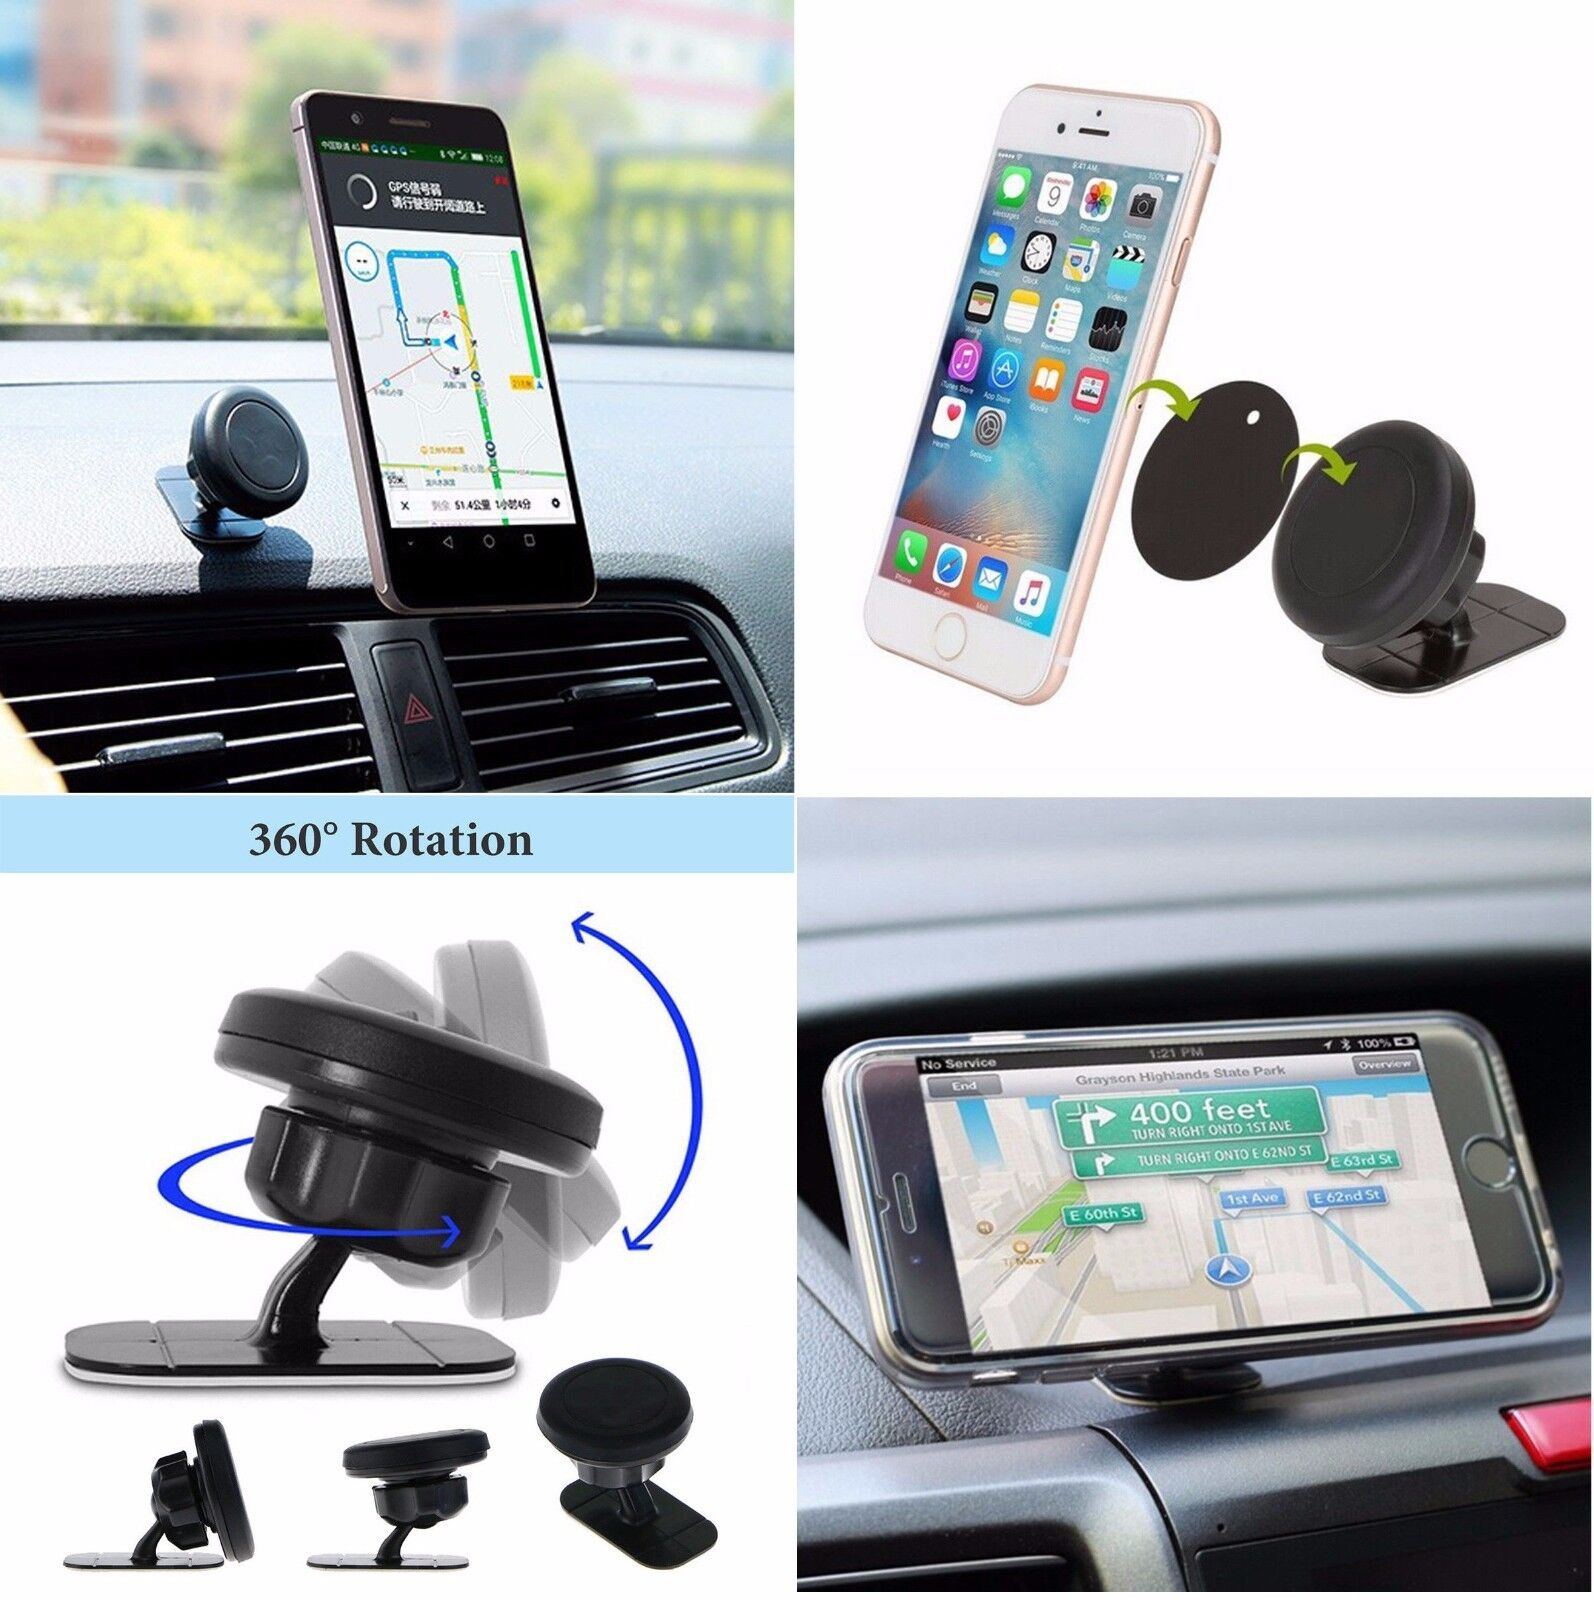 Magnetic Car Dashboard Phone Holder Mount Cradle for Smartphone Apple iPhone Samsung Galaxy LG Google Motorola